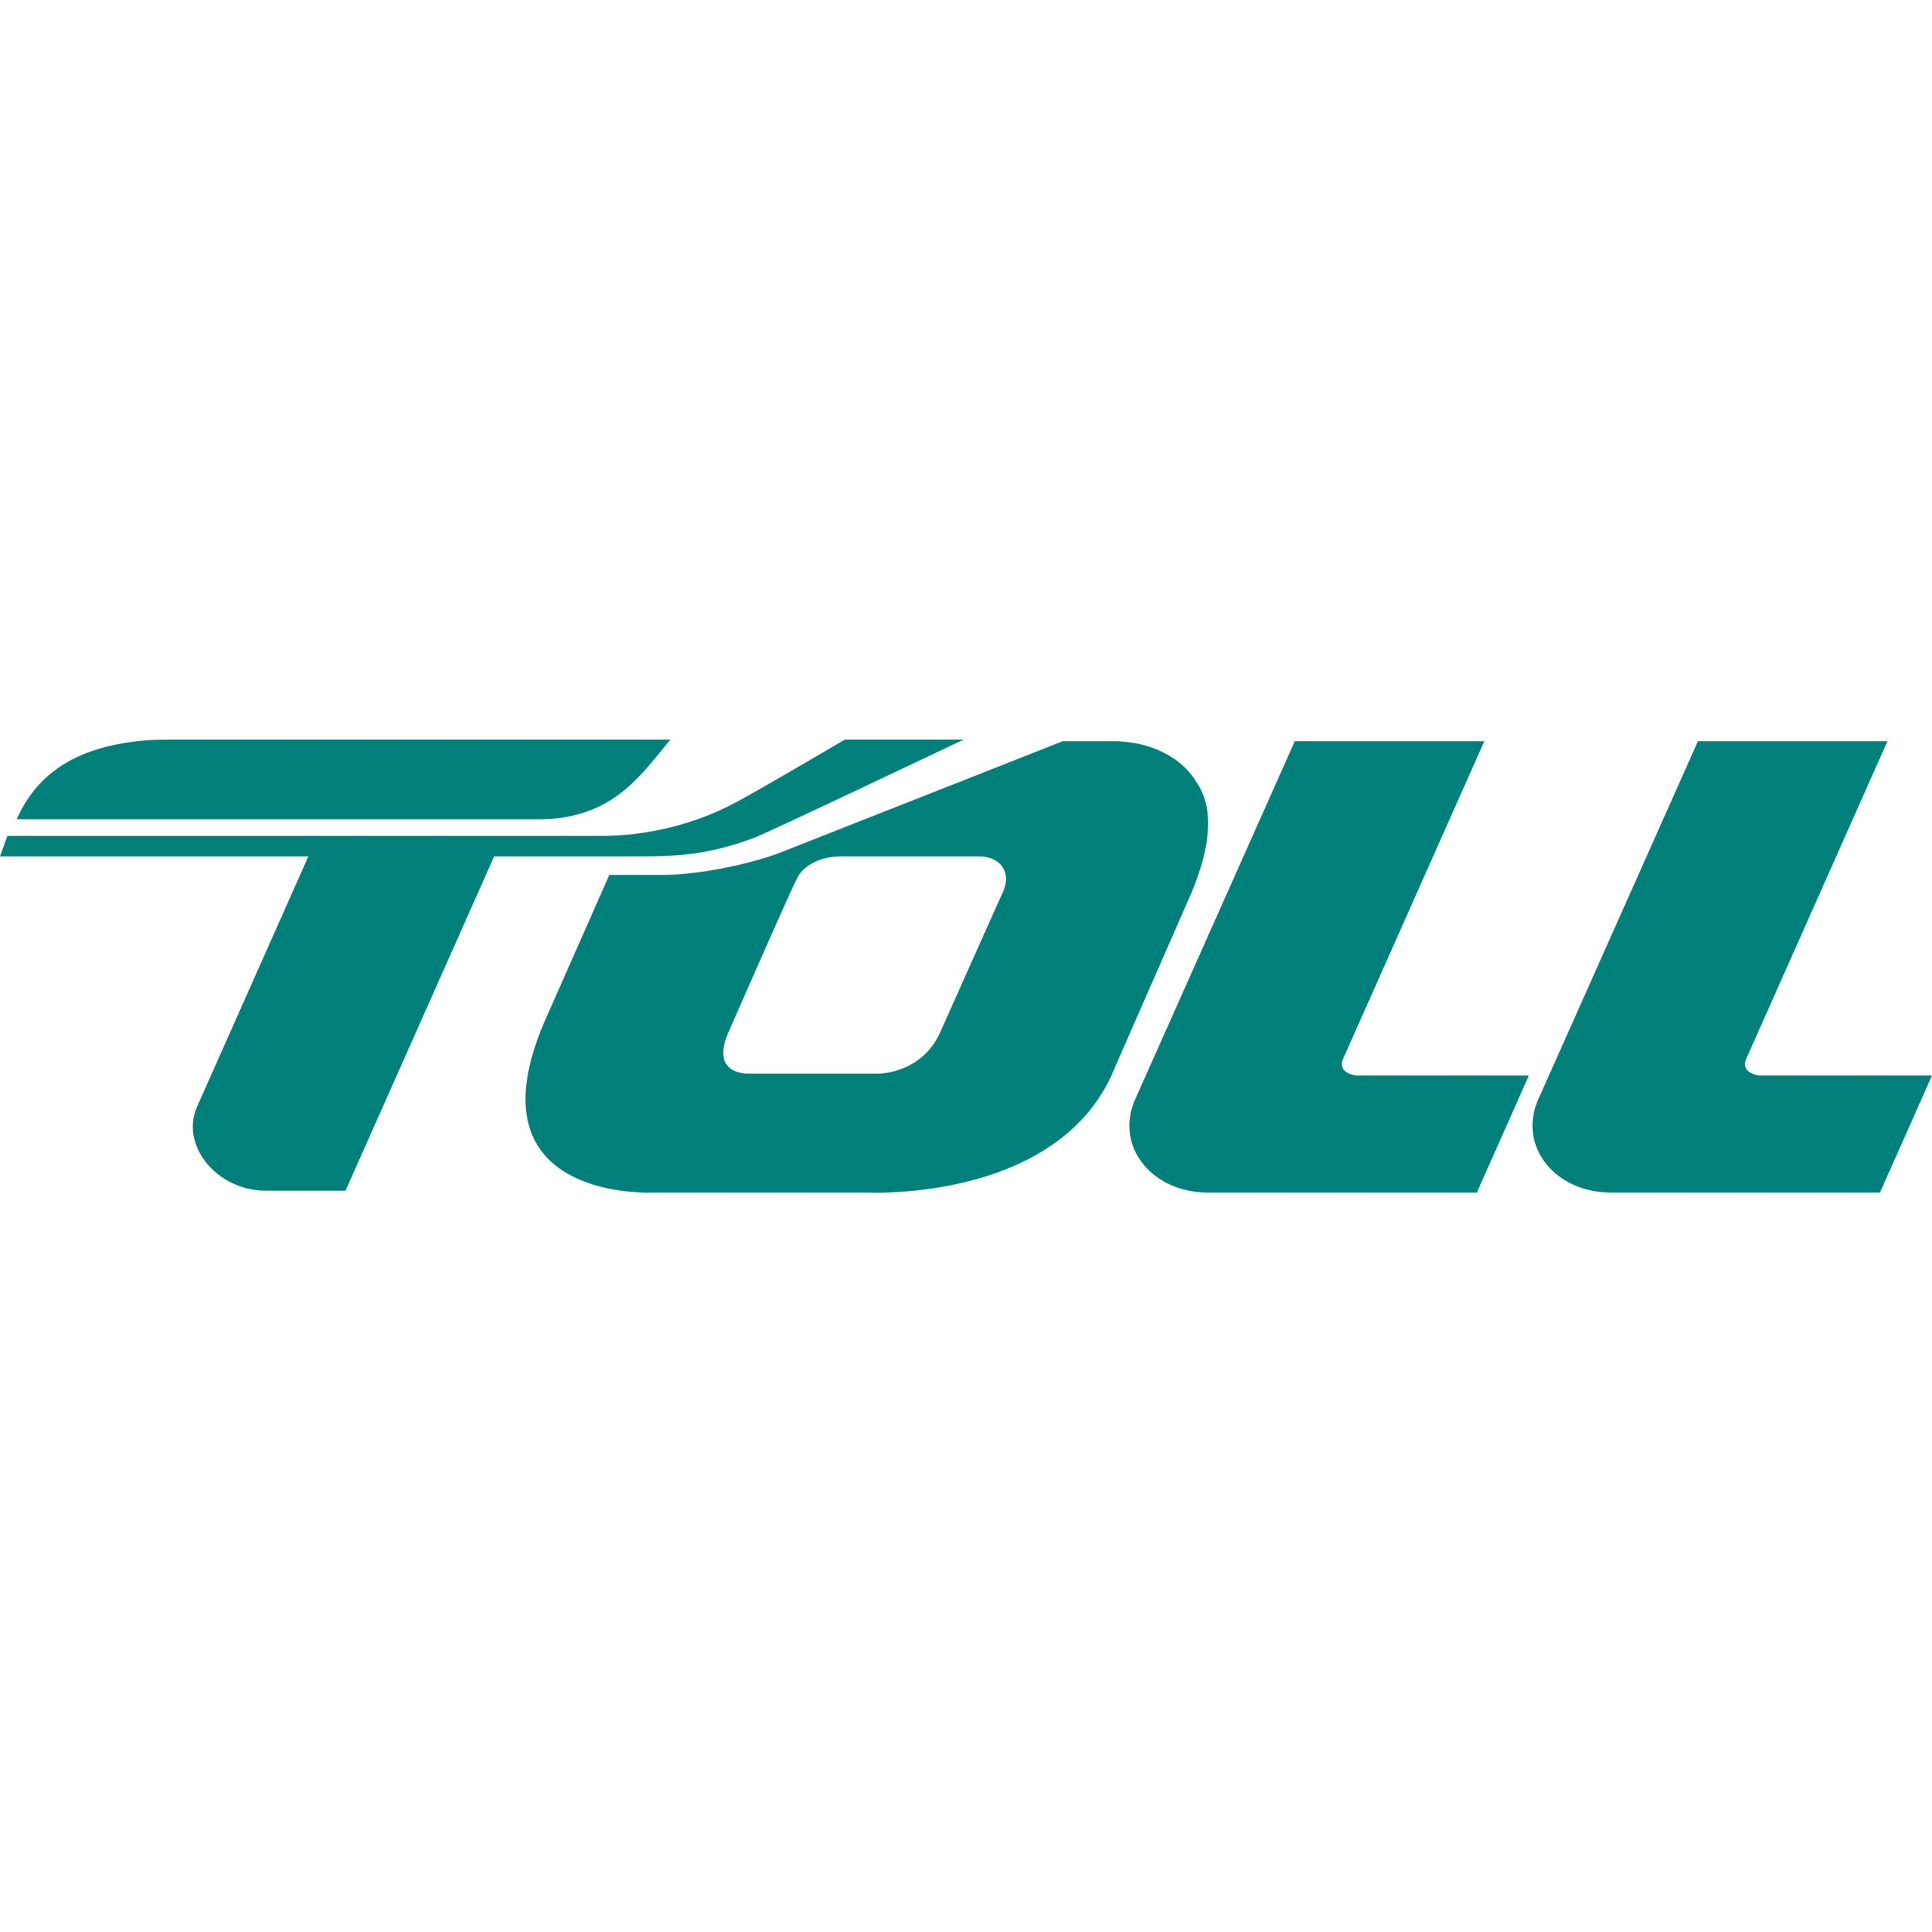 https://freightquip.com/production/wp-content/uploads/2020/07/Toll-Logo-scaled.jpg